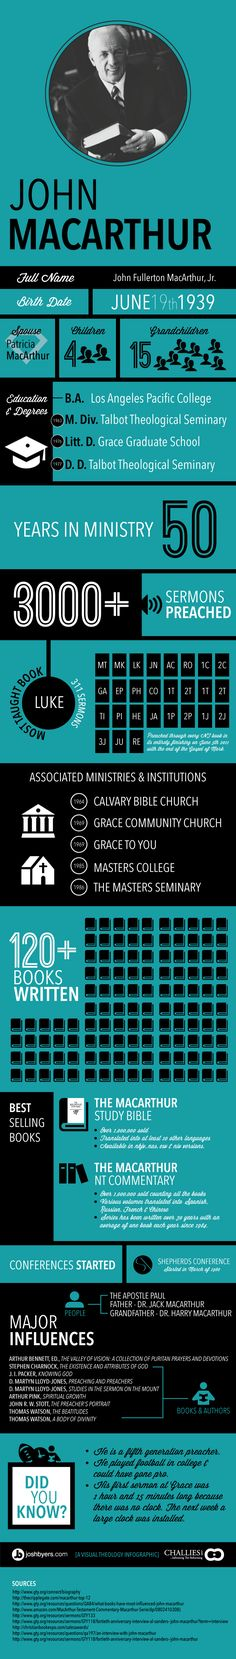 John MacArthur Infographic- A lifetime of service to Christ! Haha love the last did you know. He seems to keep them to 50 minutes...